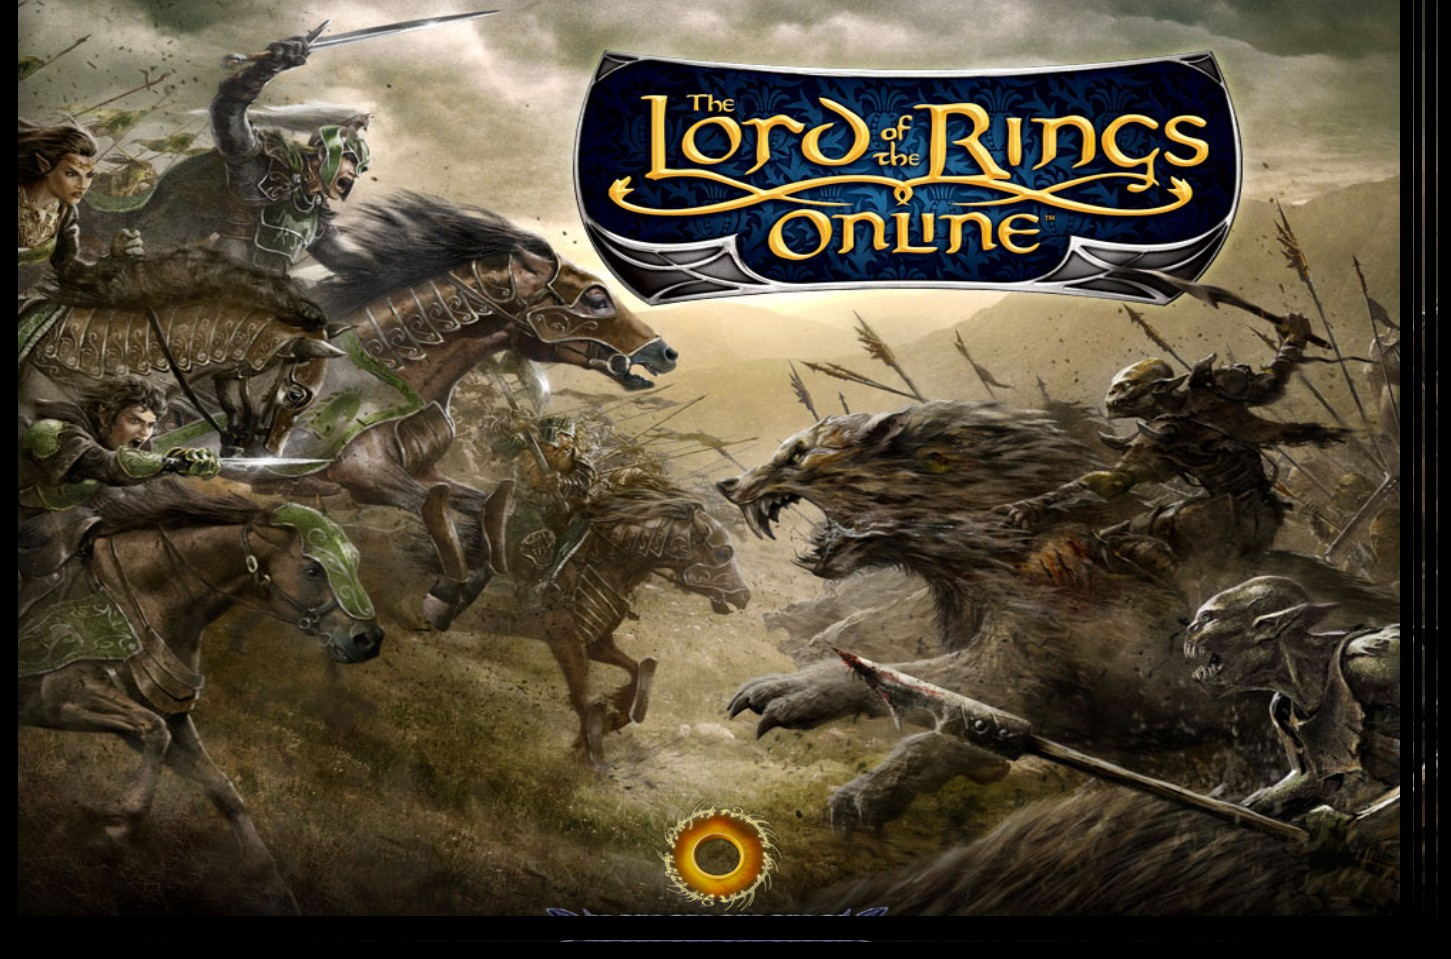 『The Lord of the Rings Online』始めました!